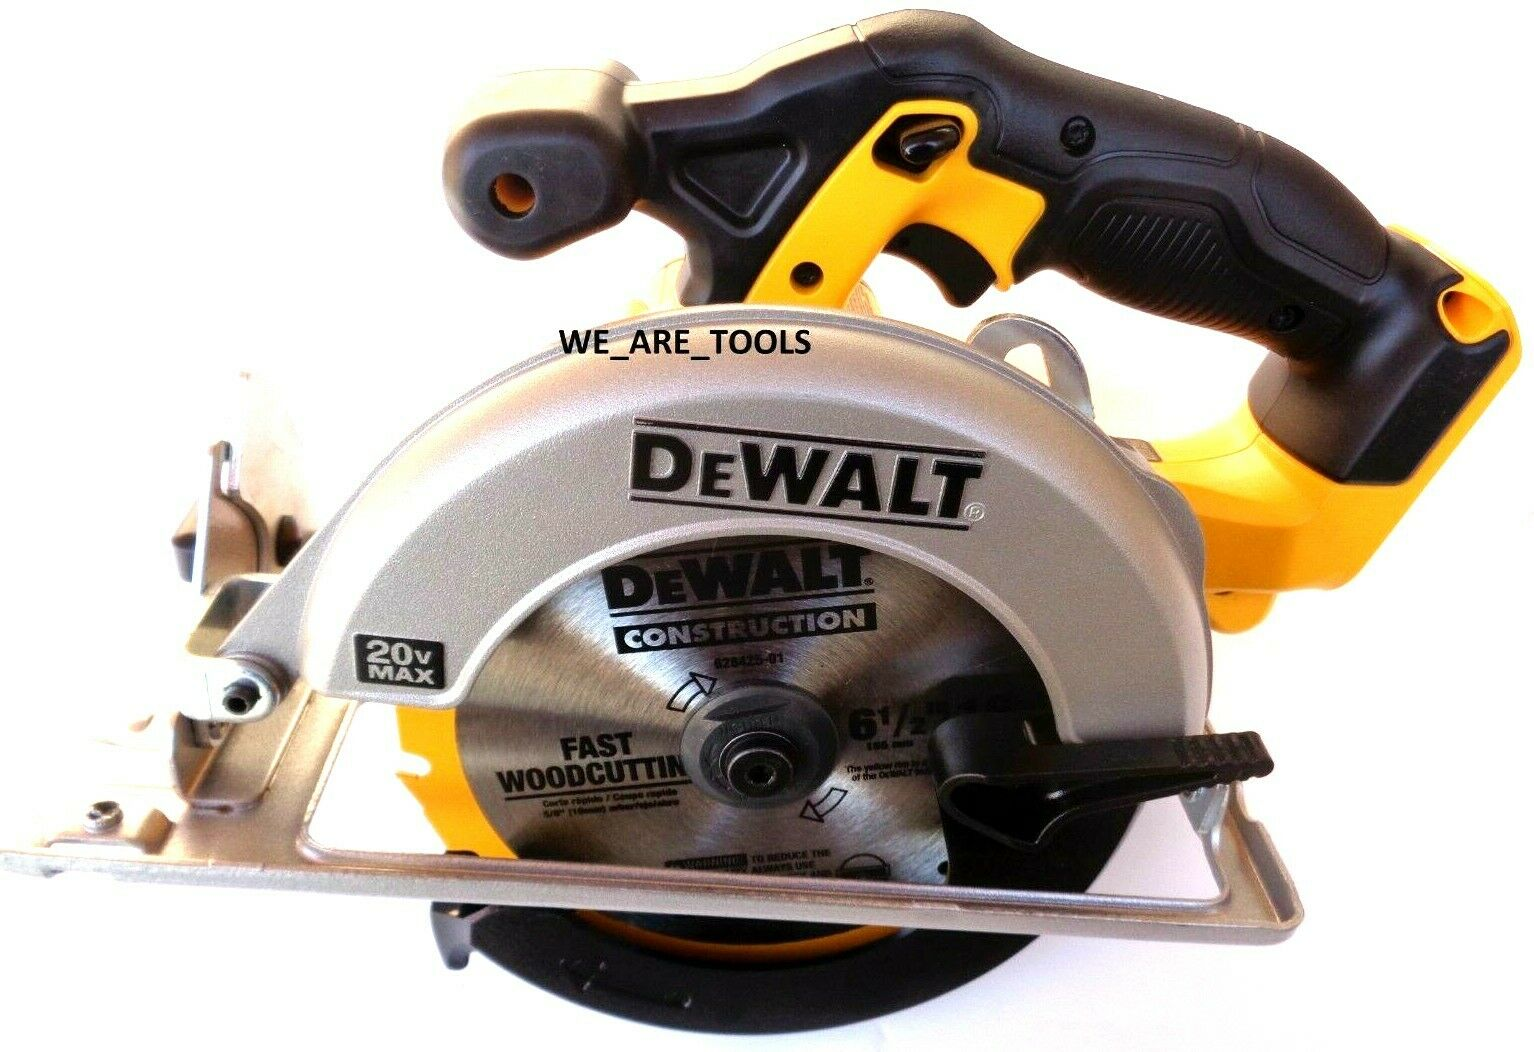 NEW Dewalt DCS393 20V Cordless Battery Circular Saw 6-1/2″ 20 Volt W/ Blade